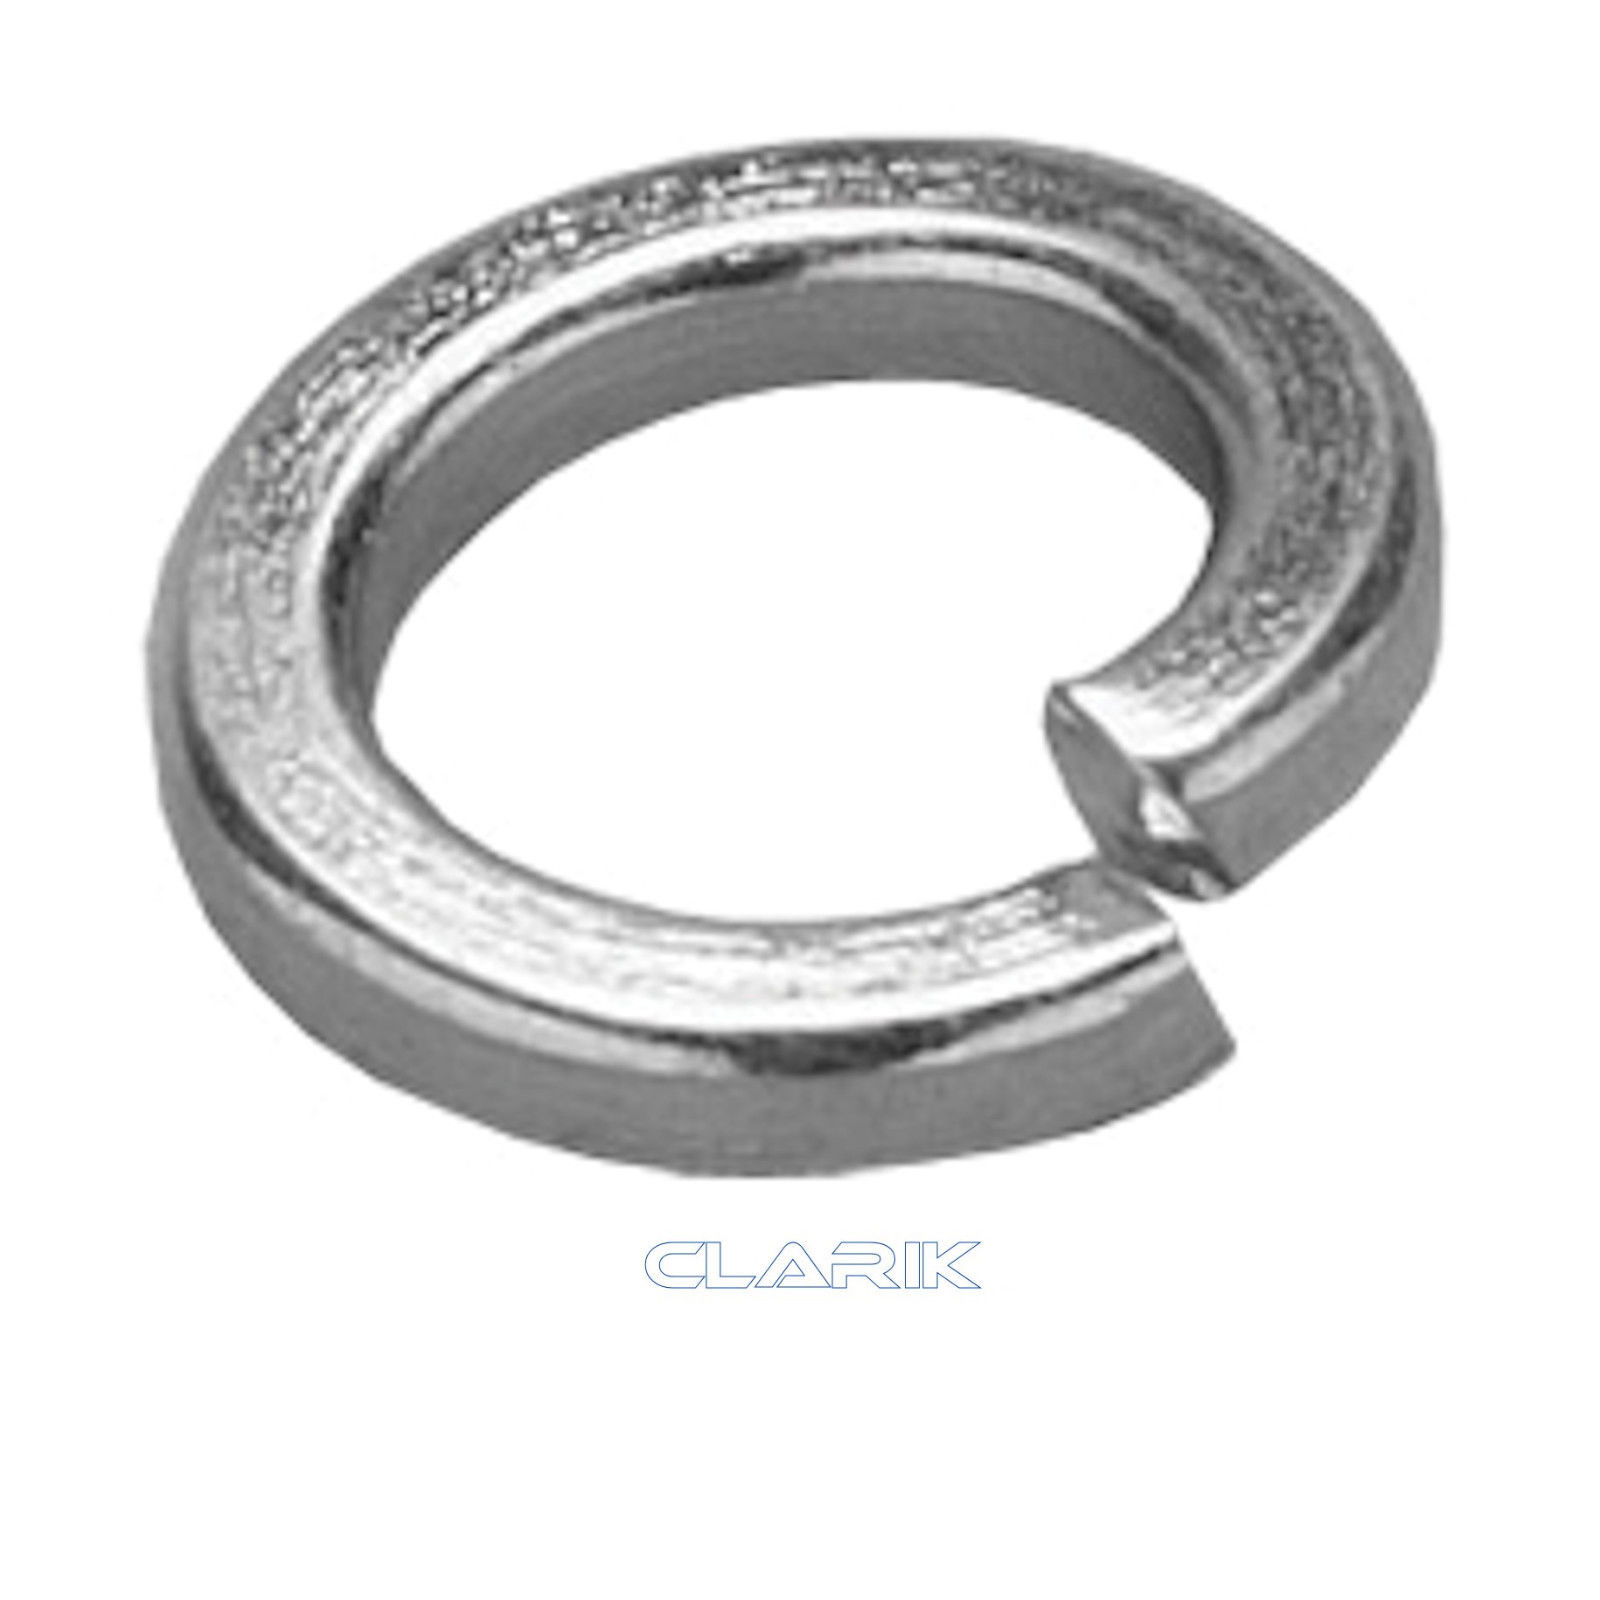 SPRING WASHERS METRIC A2 STAINLESS STEEL SQUARE SECTION M10 QTY 100